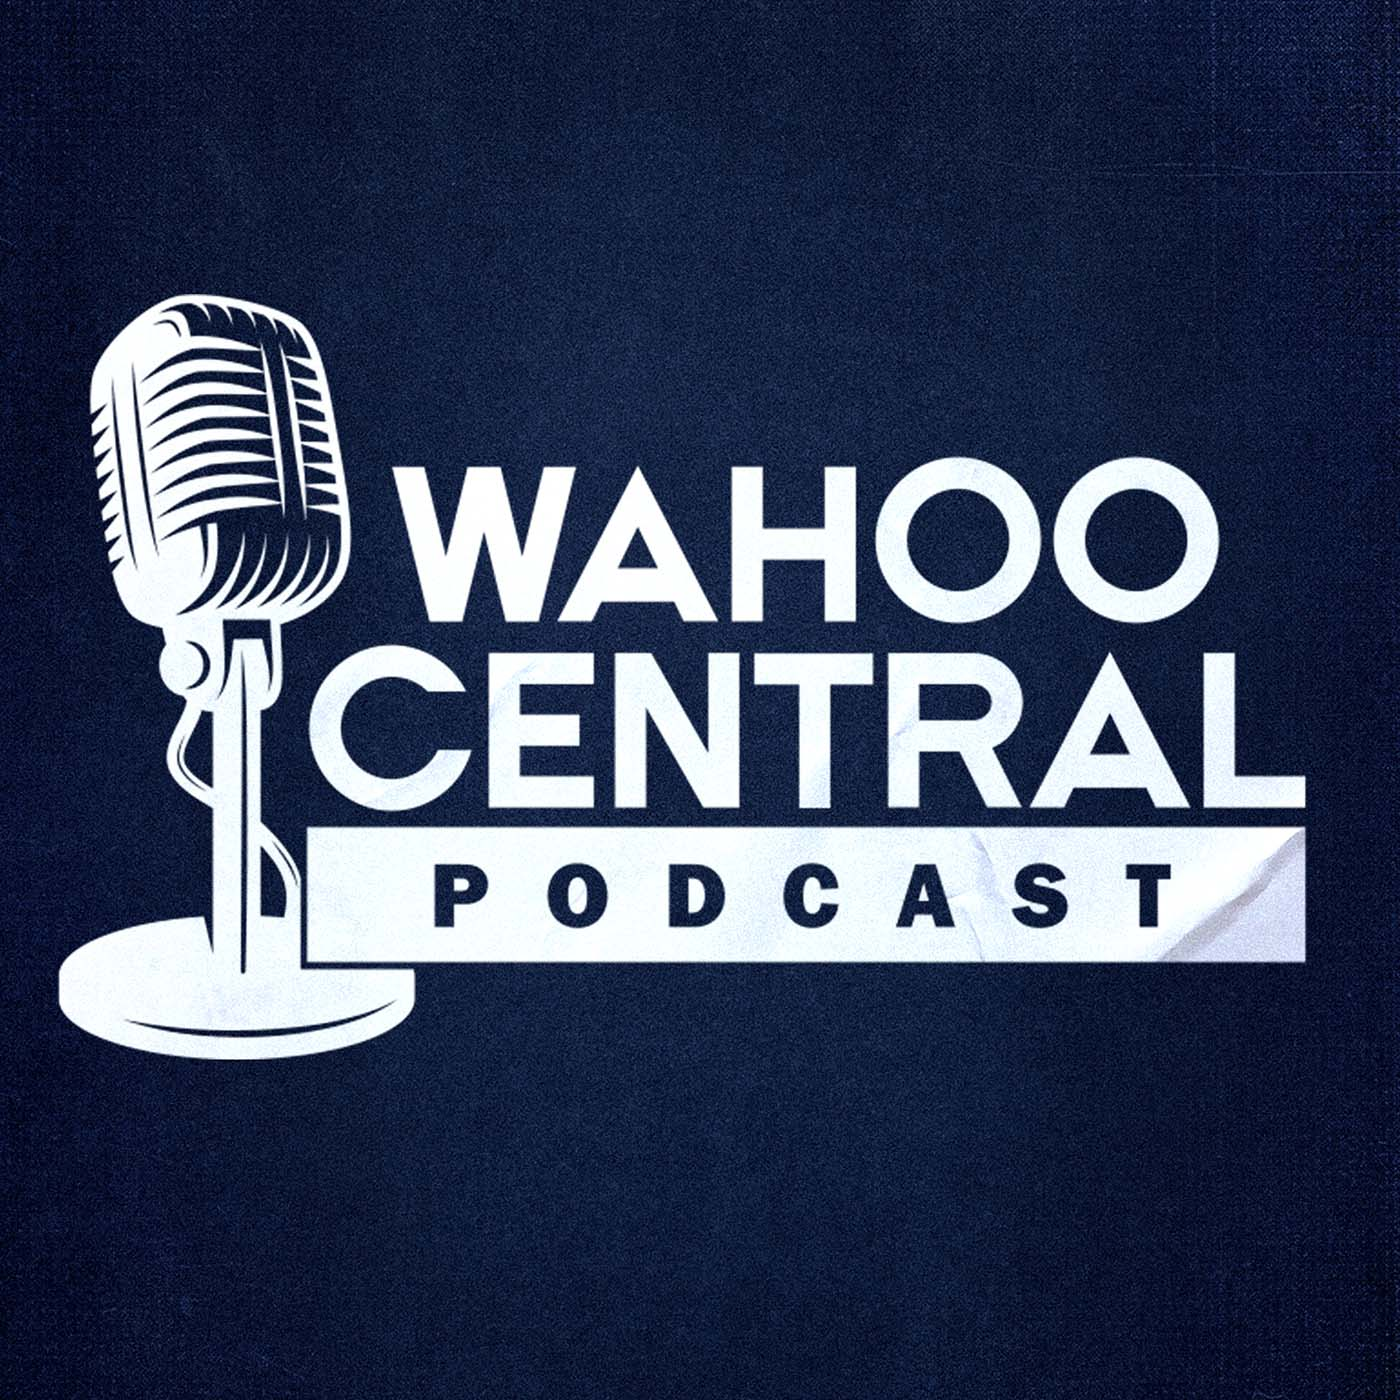 Wahoo Central Podcast: Jimmy Miller and Rosie Johanson